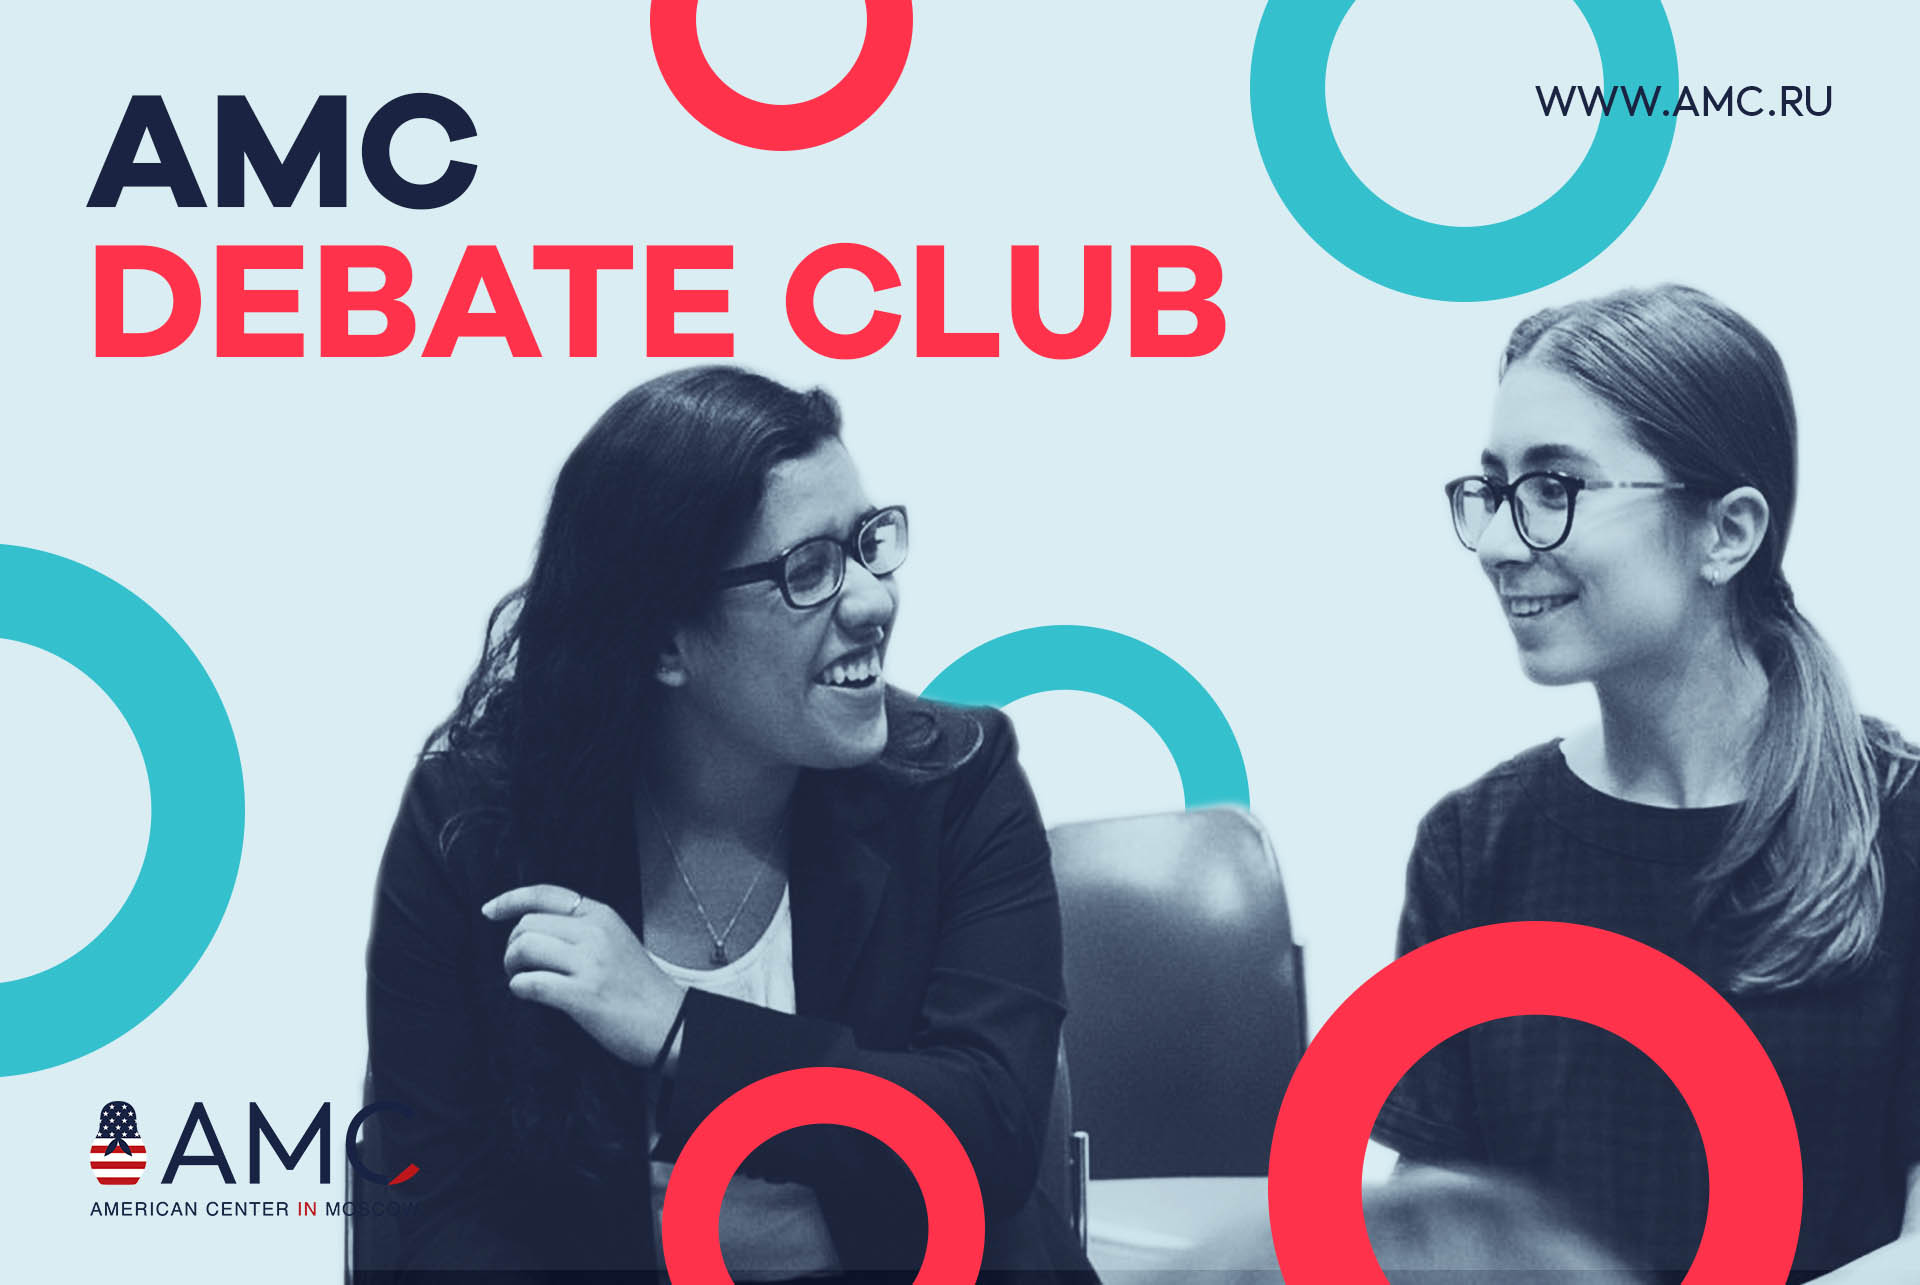 AMC Debate Club